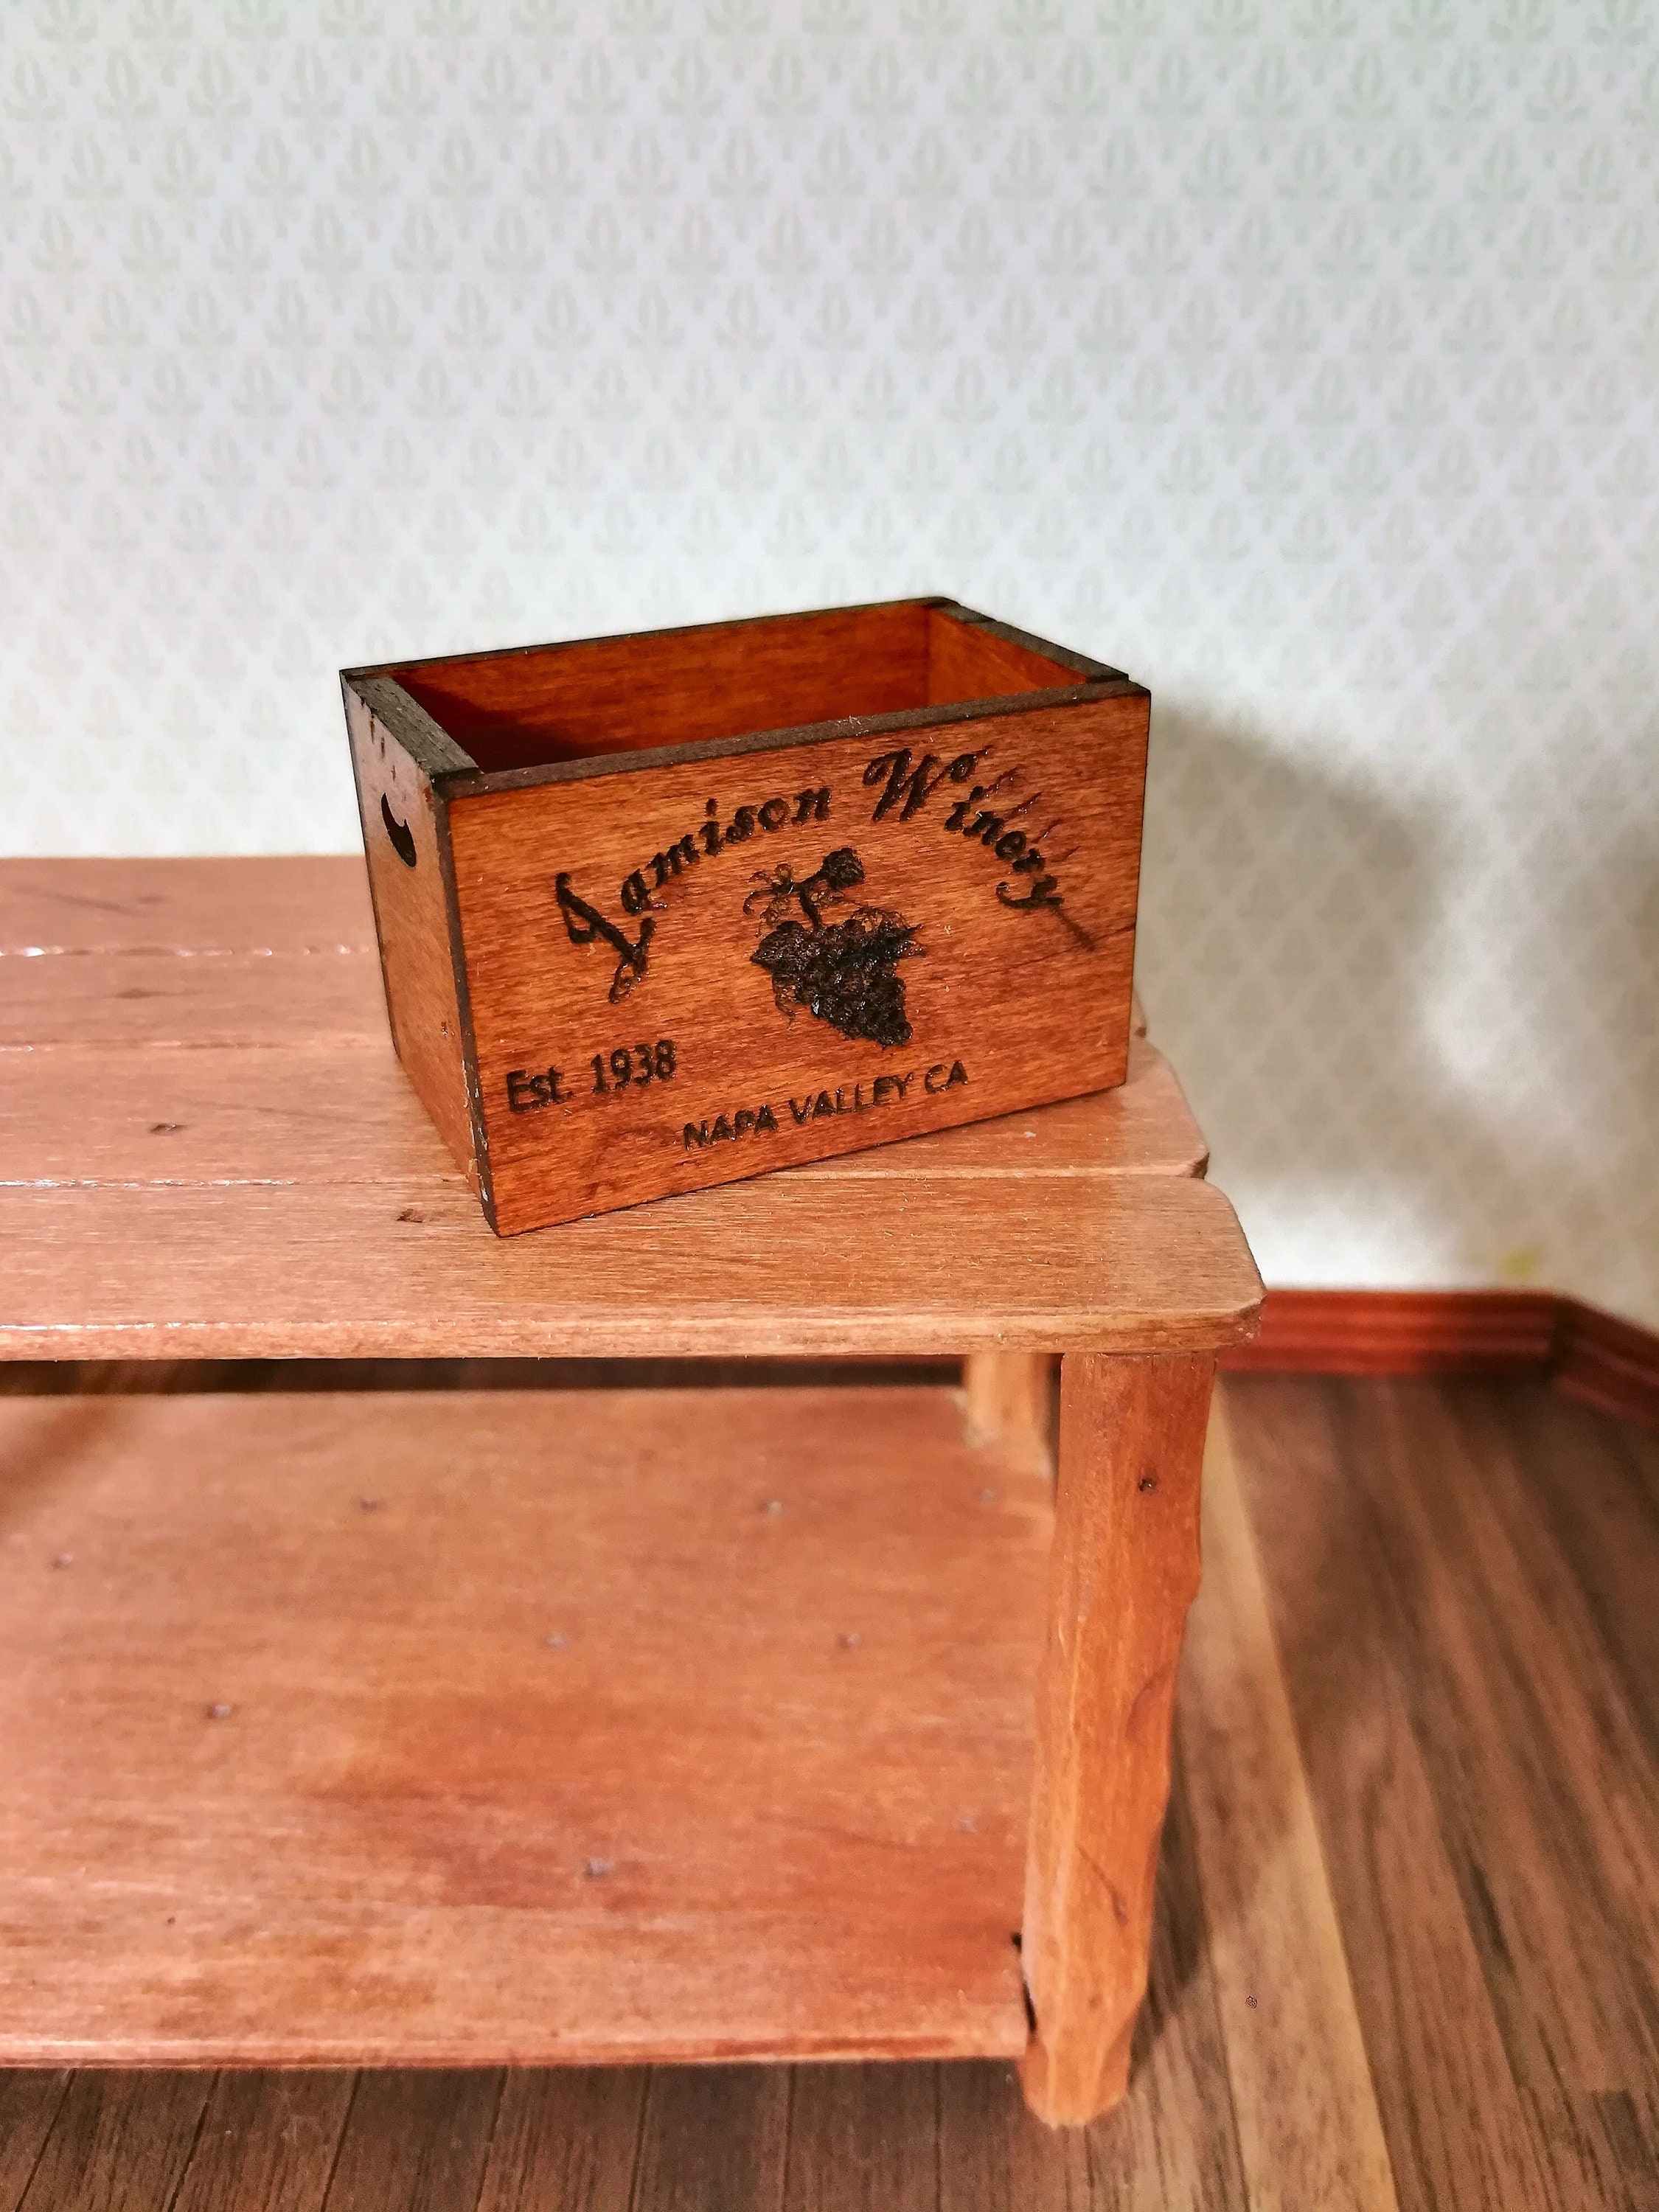 Prime Dollhouse Miniature Wine Crate Jamison Winery Napa Valley Download Free Architecture Designs Scobabritishbridgeorg